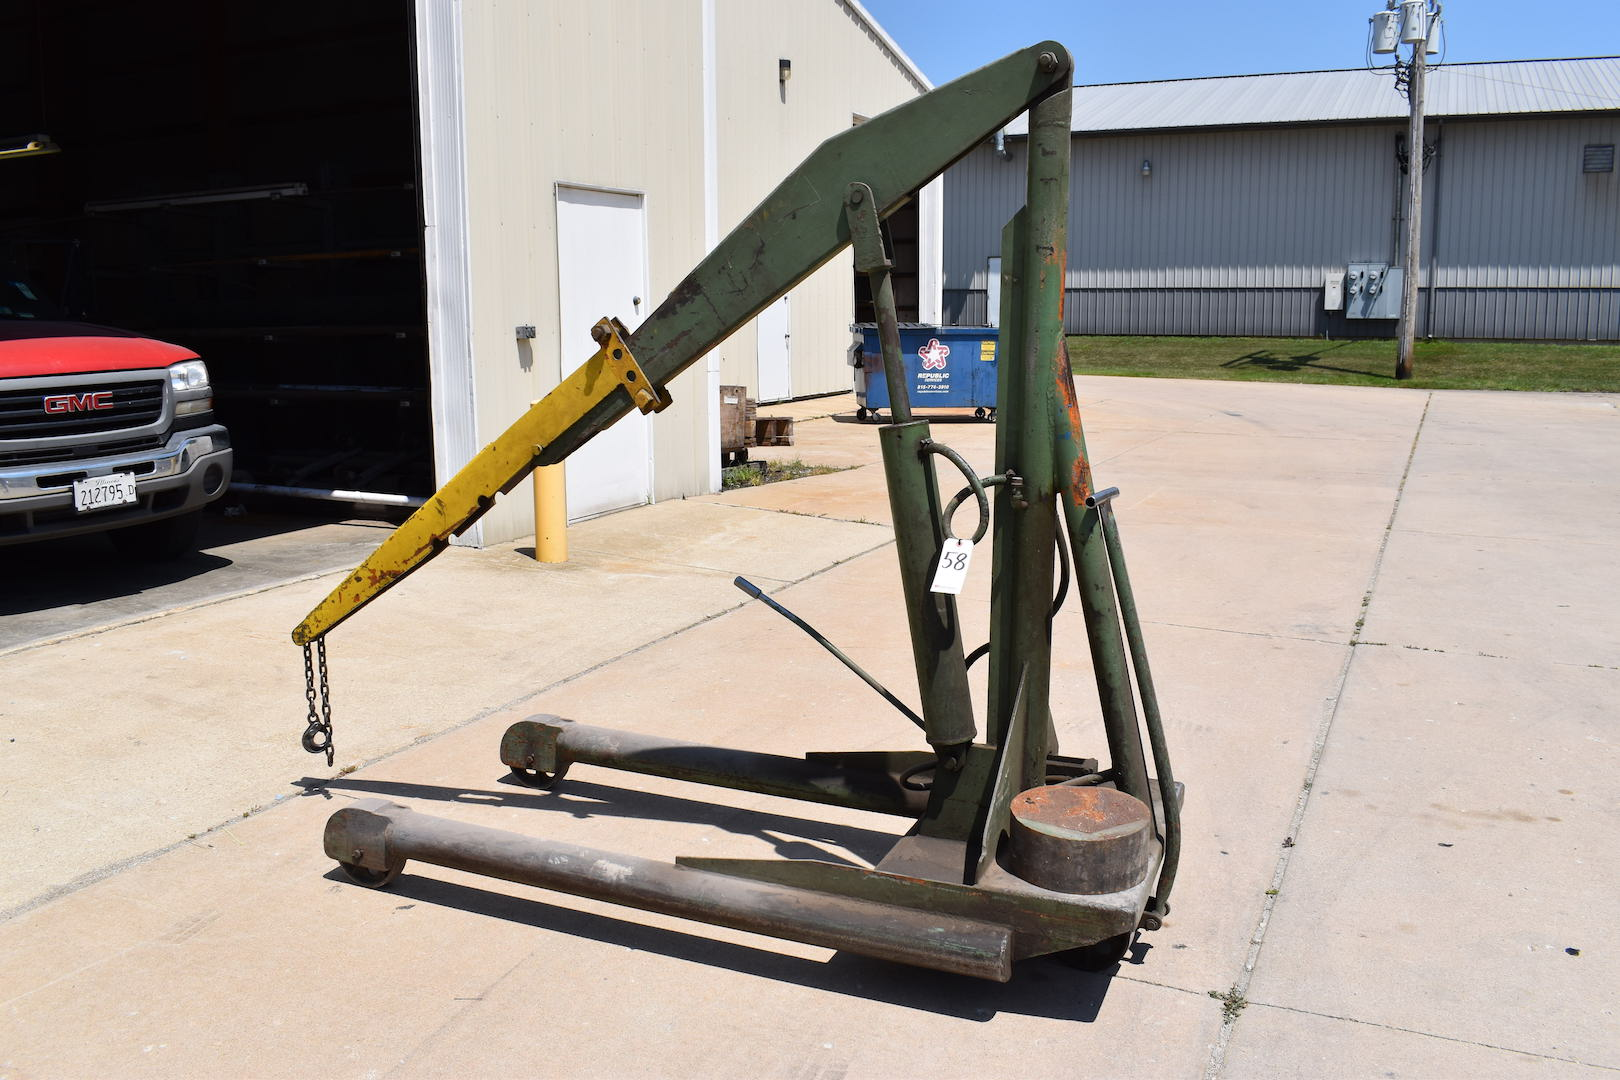 Lot 58 - Ruger Model HP-2 Hydraulic Engine Hoist, S/N C-8962, 84 in. Max. Arm Length